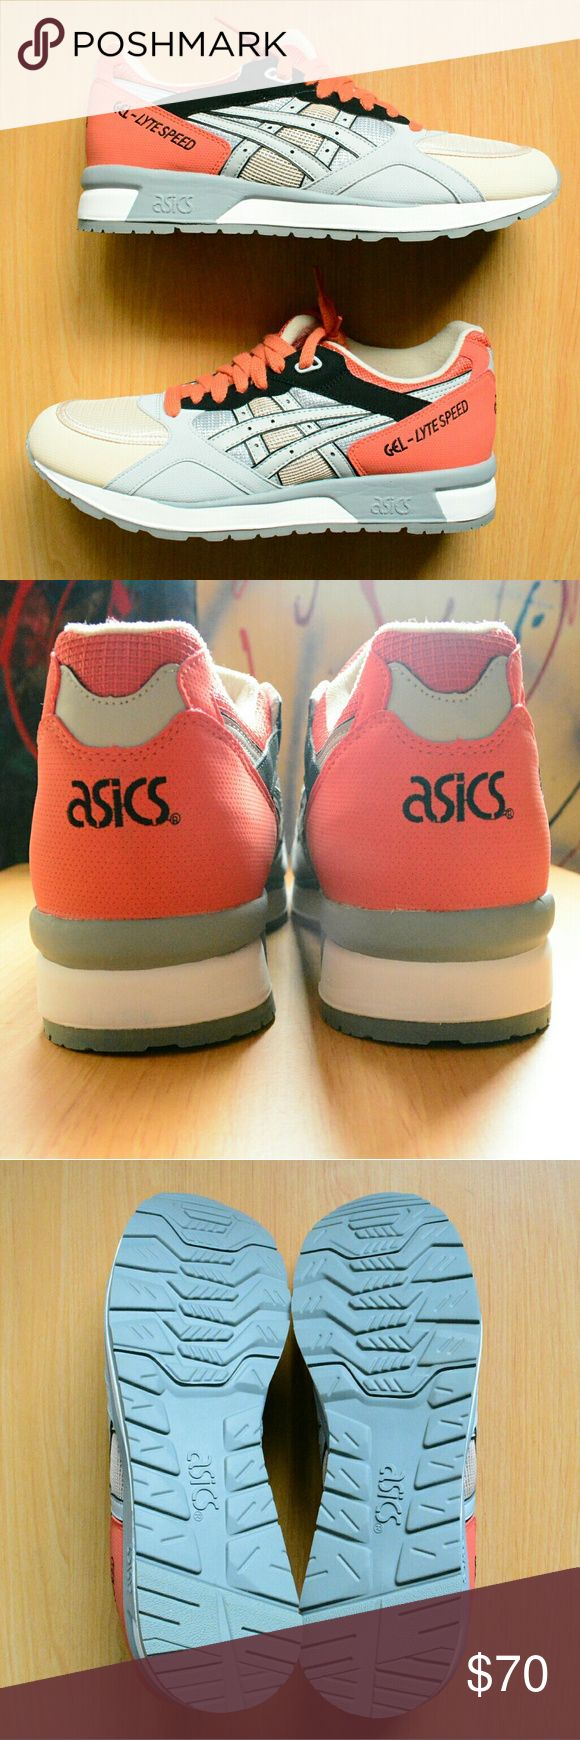 Men's ASICS GEL-LYTE Speed Runners ****FAST SHIPPING****  New, Men's ASICS GEL-LYTE Speed Runners  Color: Gray Stripes / Orange Heel & Laces / Cream Toe Box  Size: 12 US / 45.5 EUR / 29.5 CM  ***With Original Box Asics Shoes Sneakers